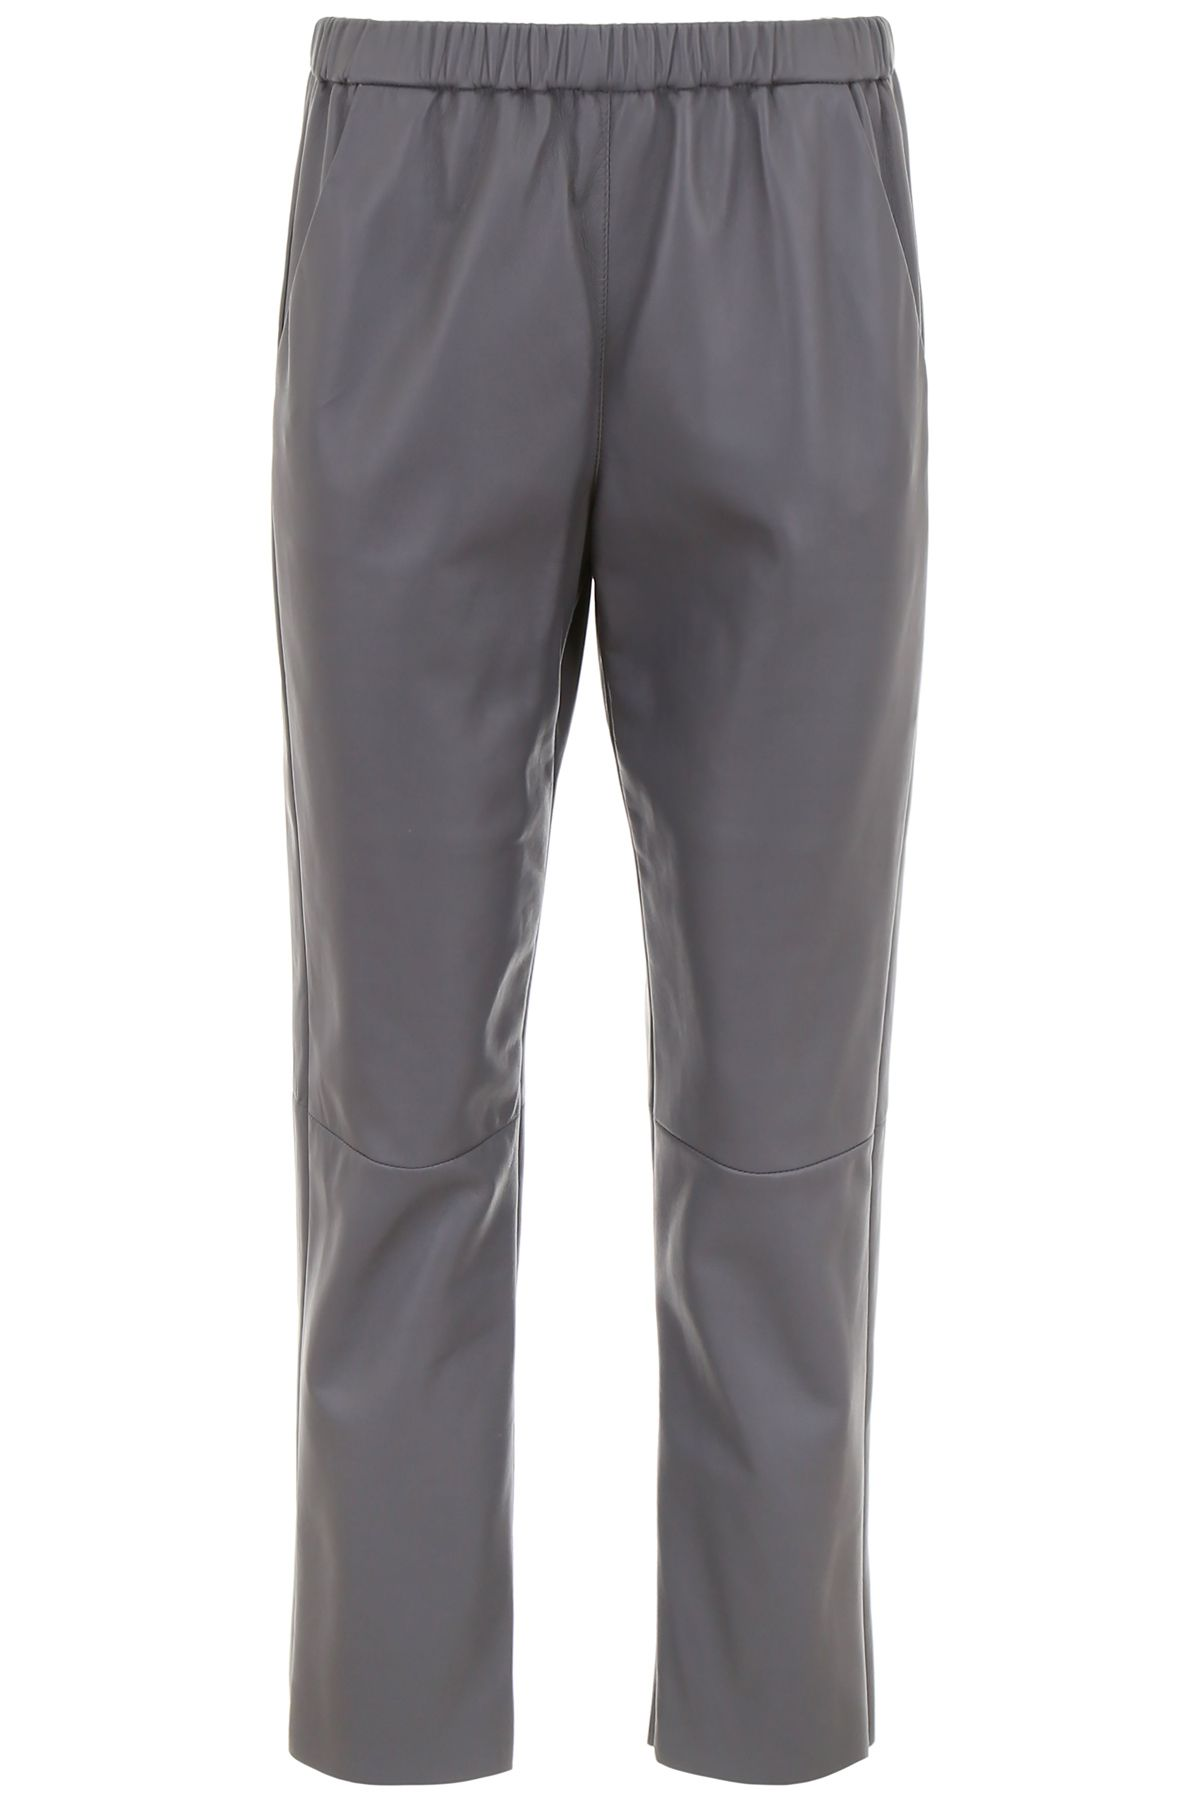 drome clothing women leather trousers